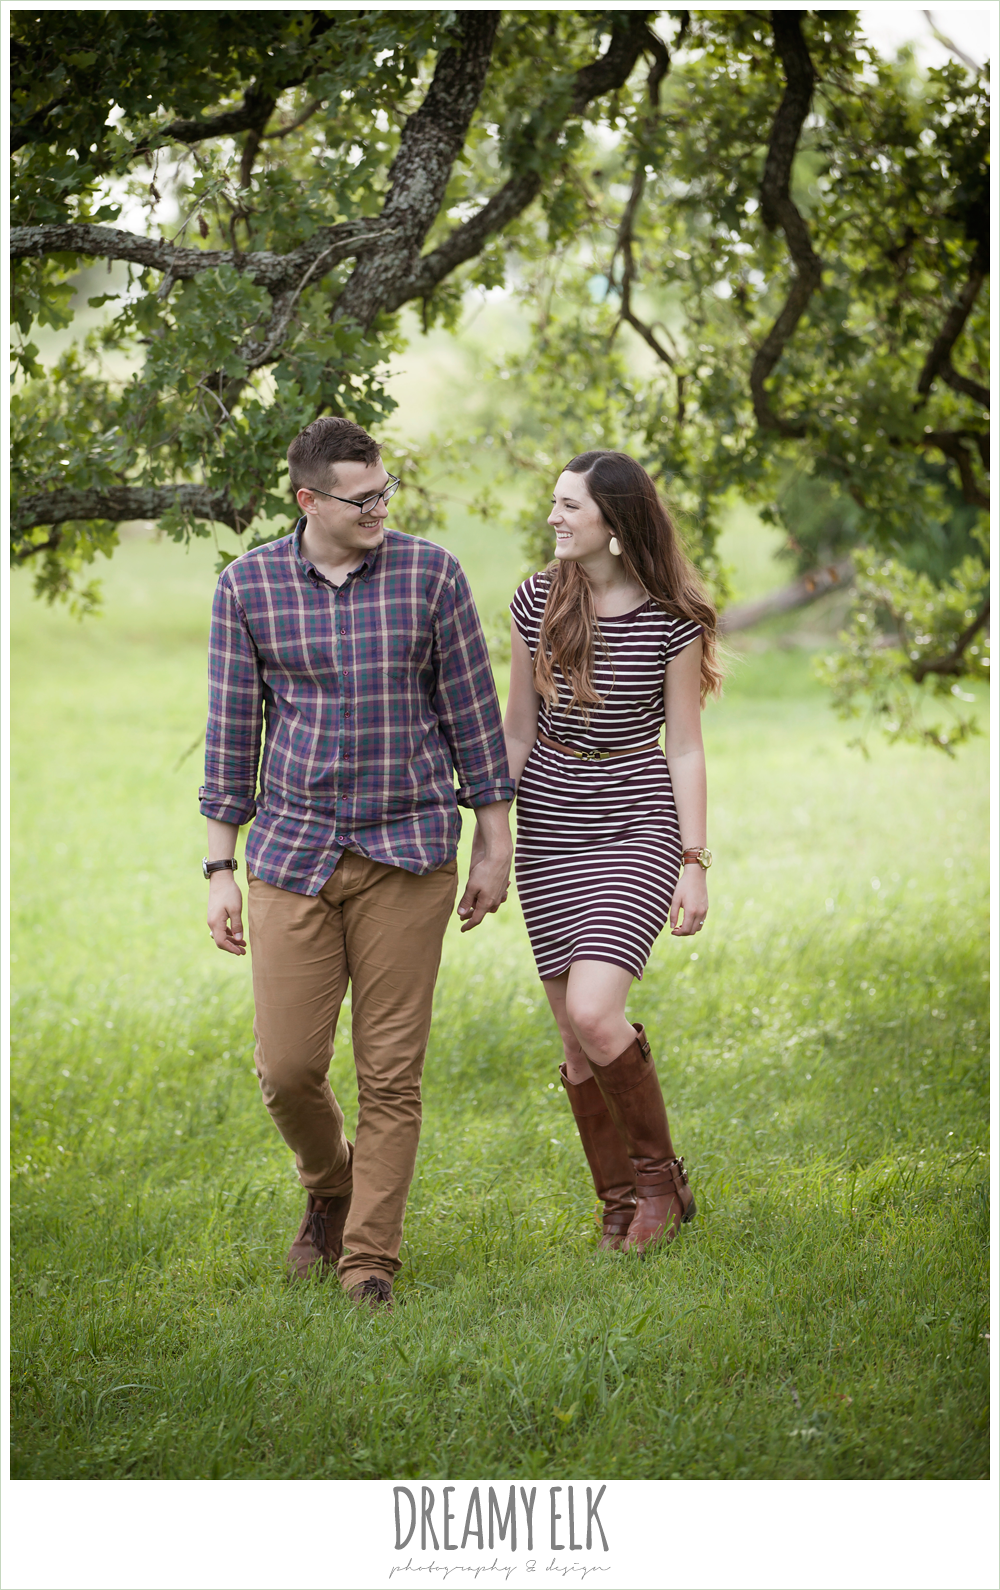 holding hands and walking, woodsy engagement photo, research park, college station, texas {dreamy elk photography and design}